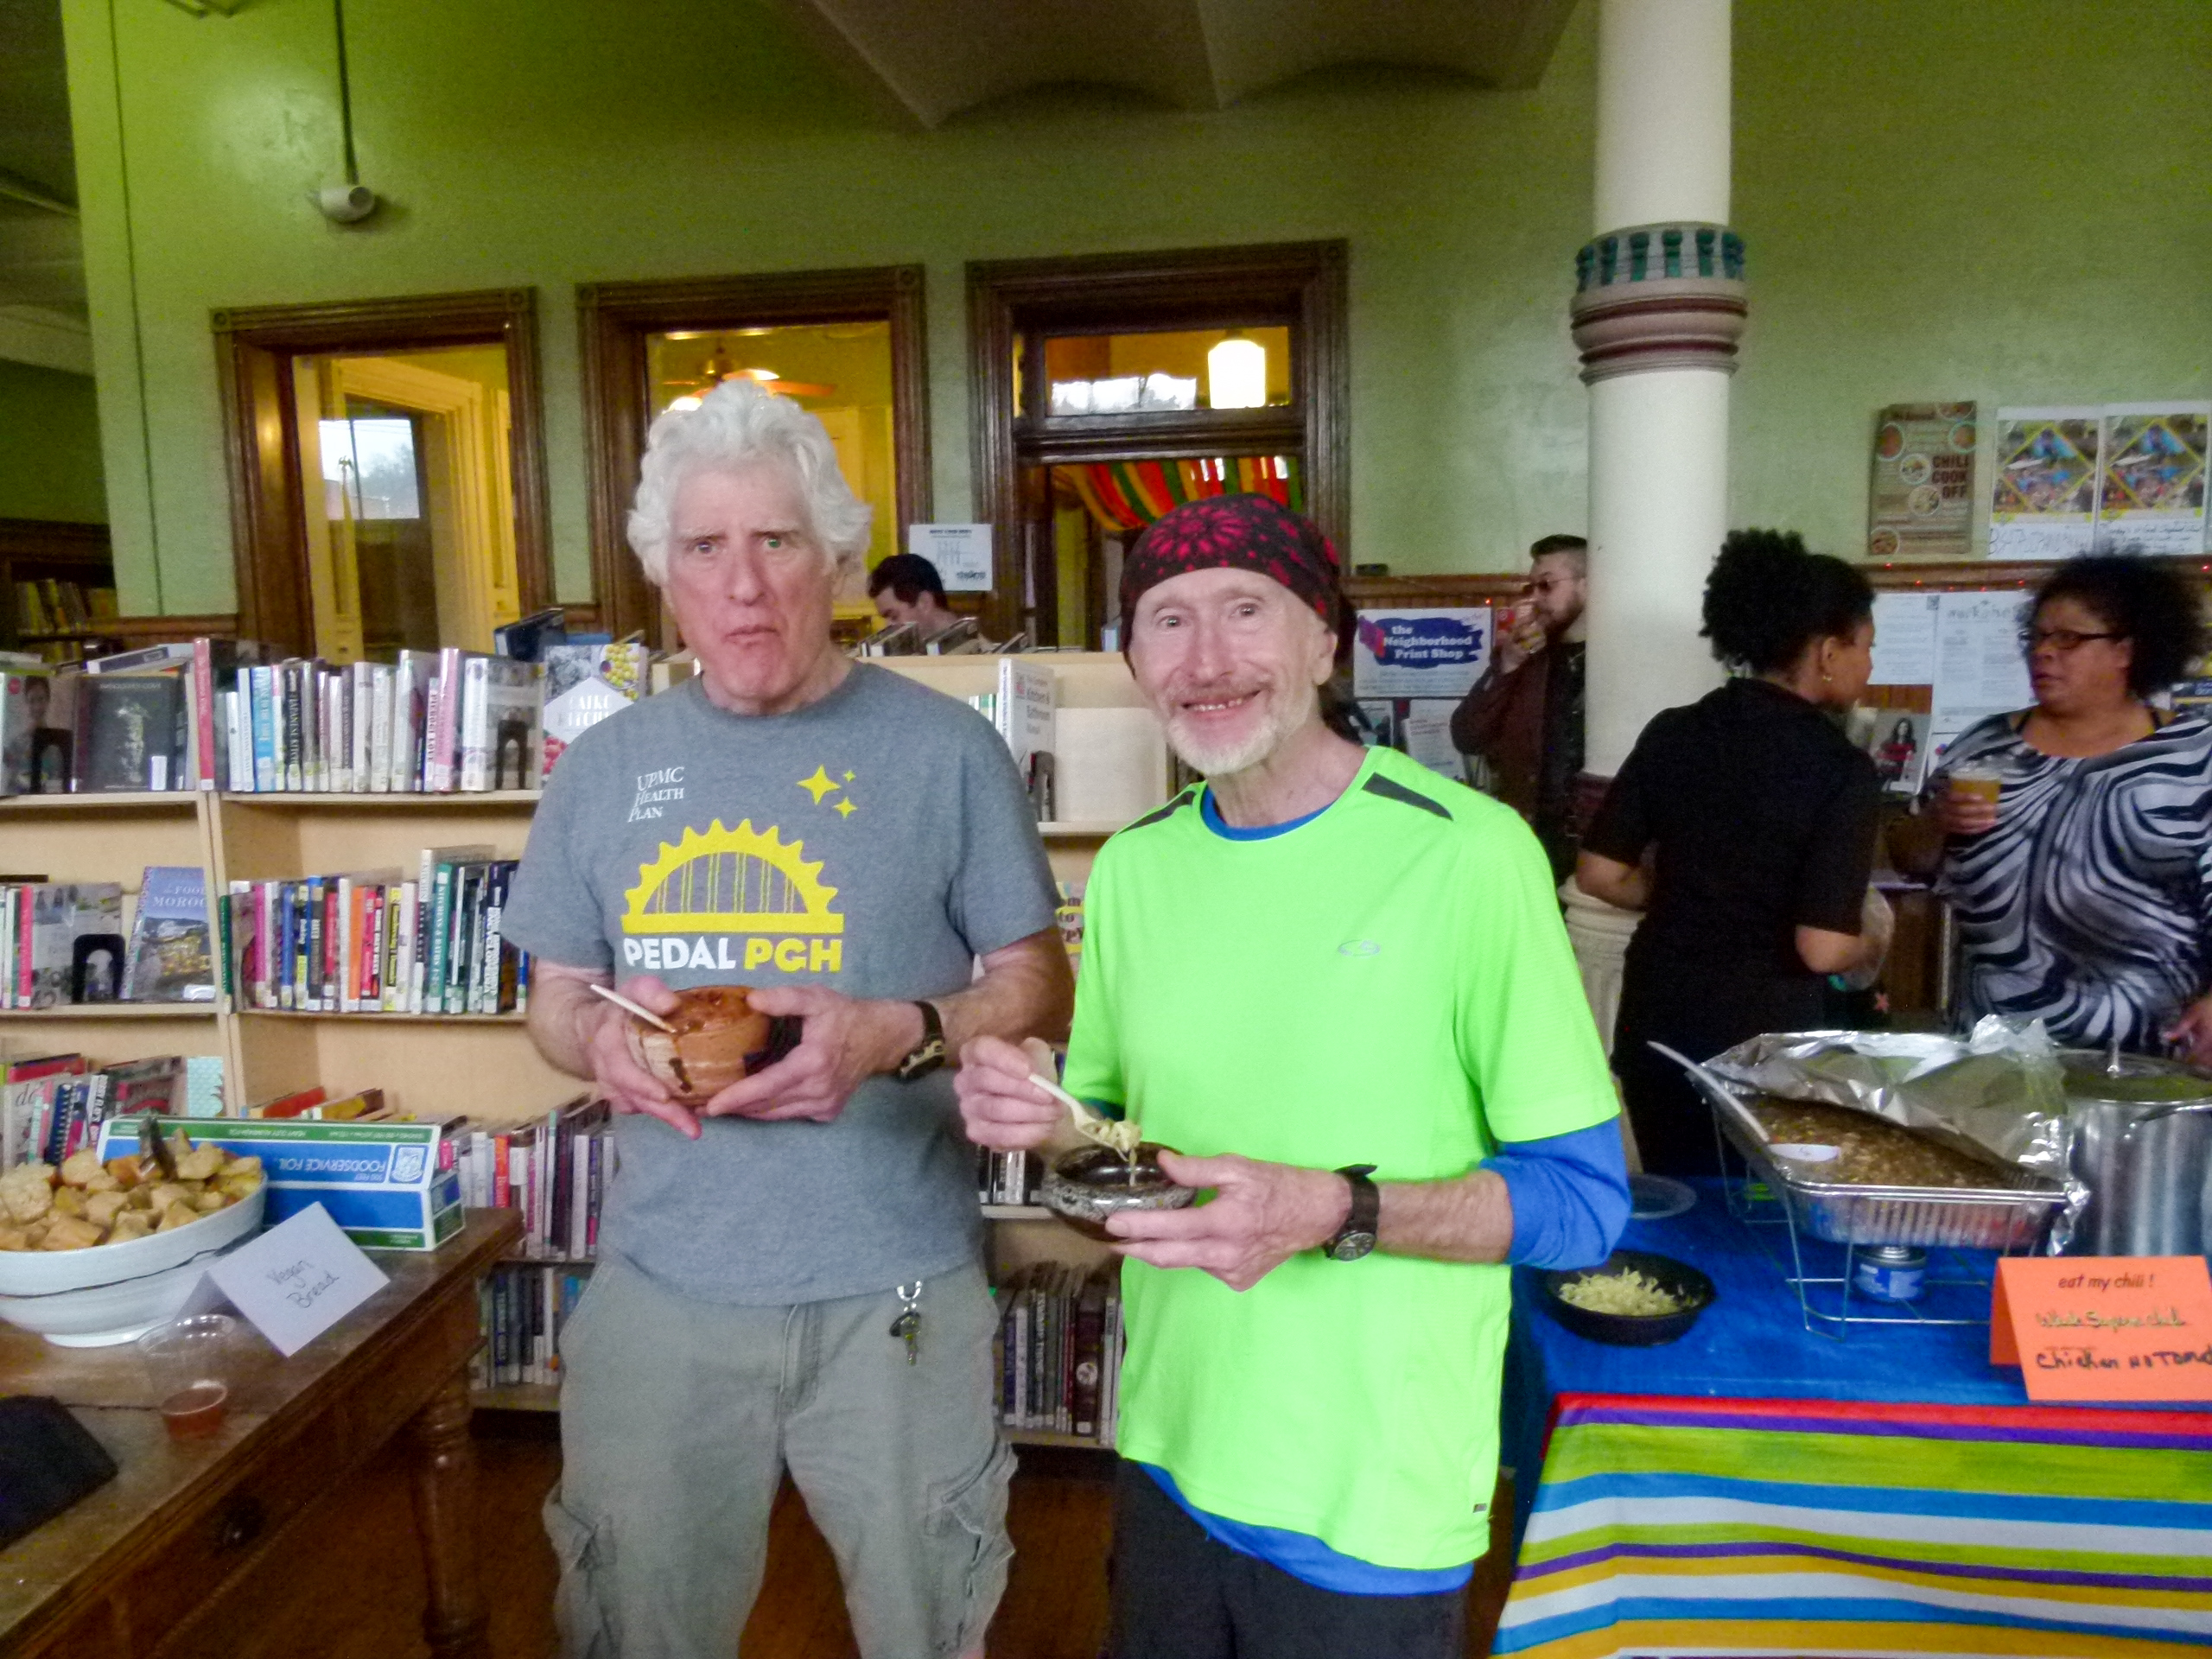 Entertainment Central editor/writer/chili lover Mike Vargo (r.) enjoying some tasty chili with friend Eric Marchbein, (l).